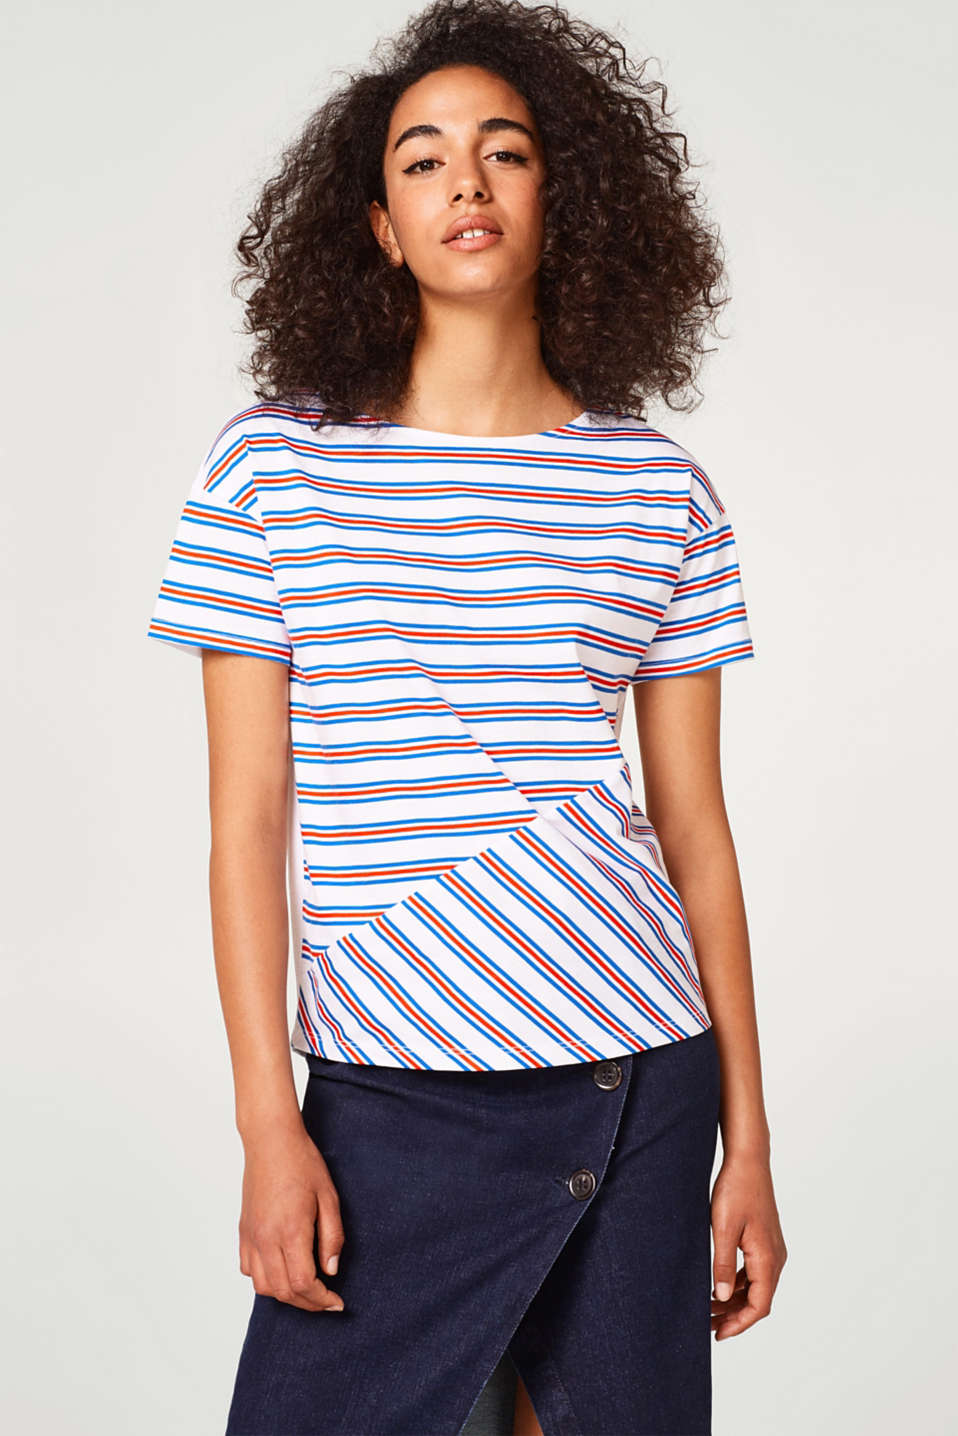 edc - T-shirt with striped print, 100% cotton